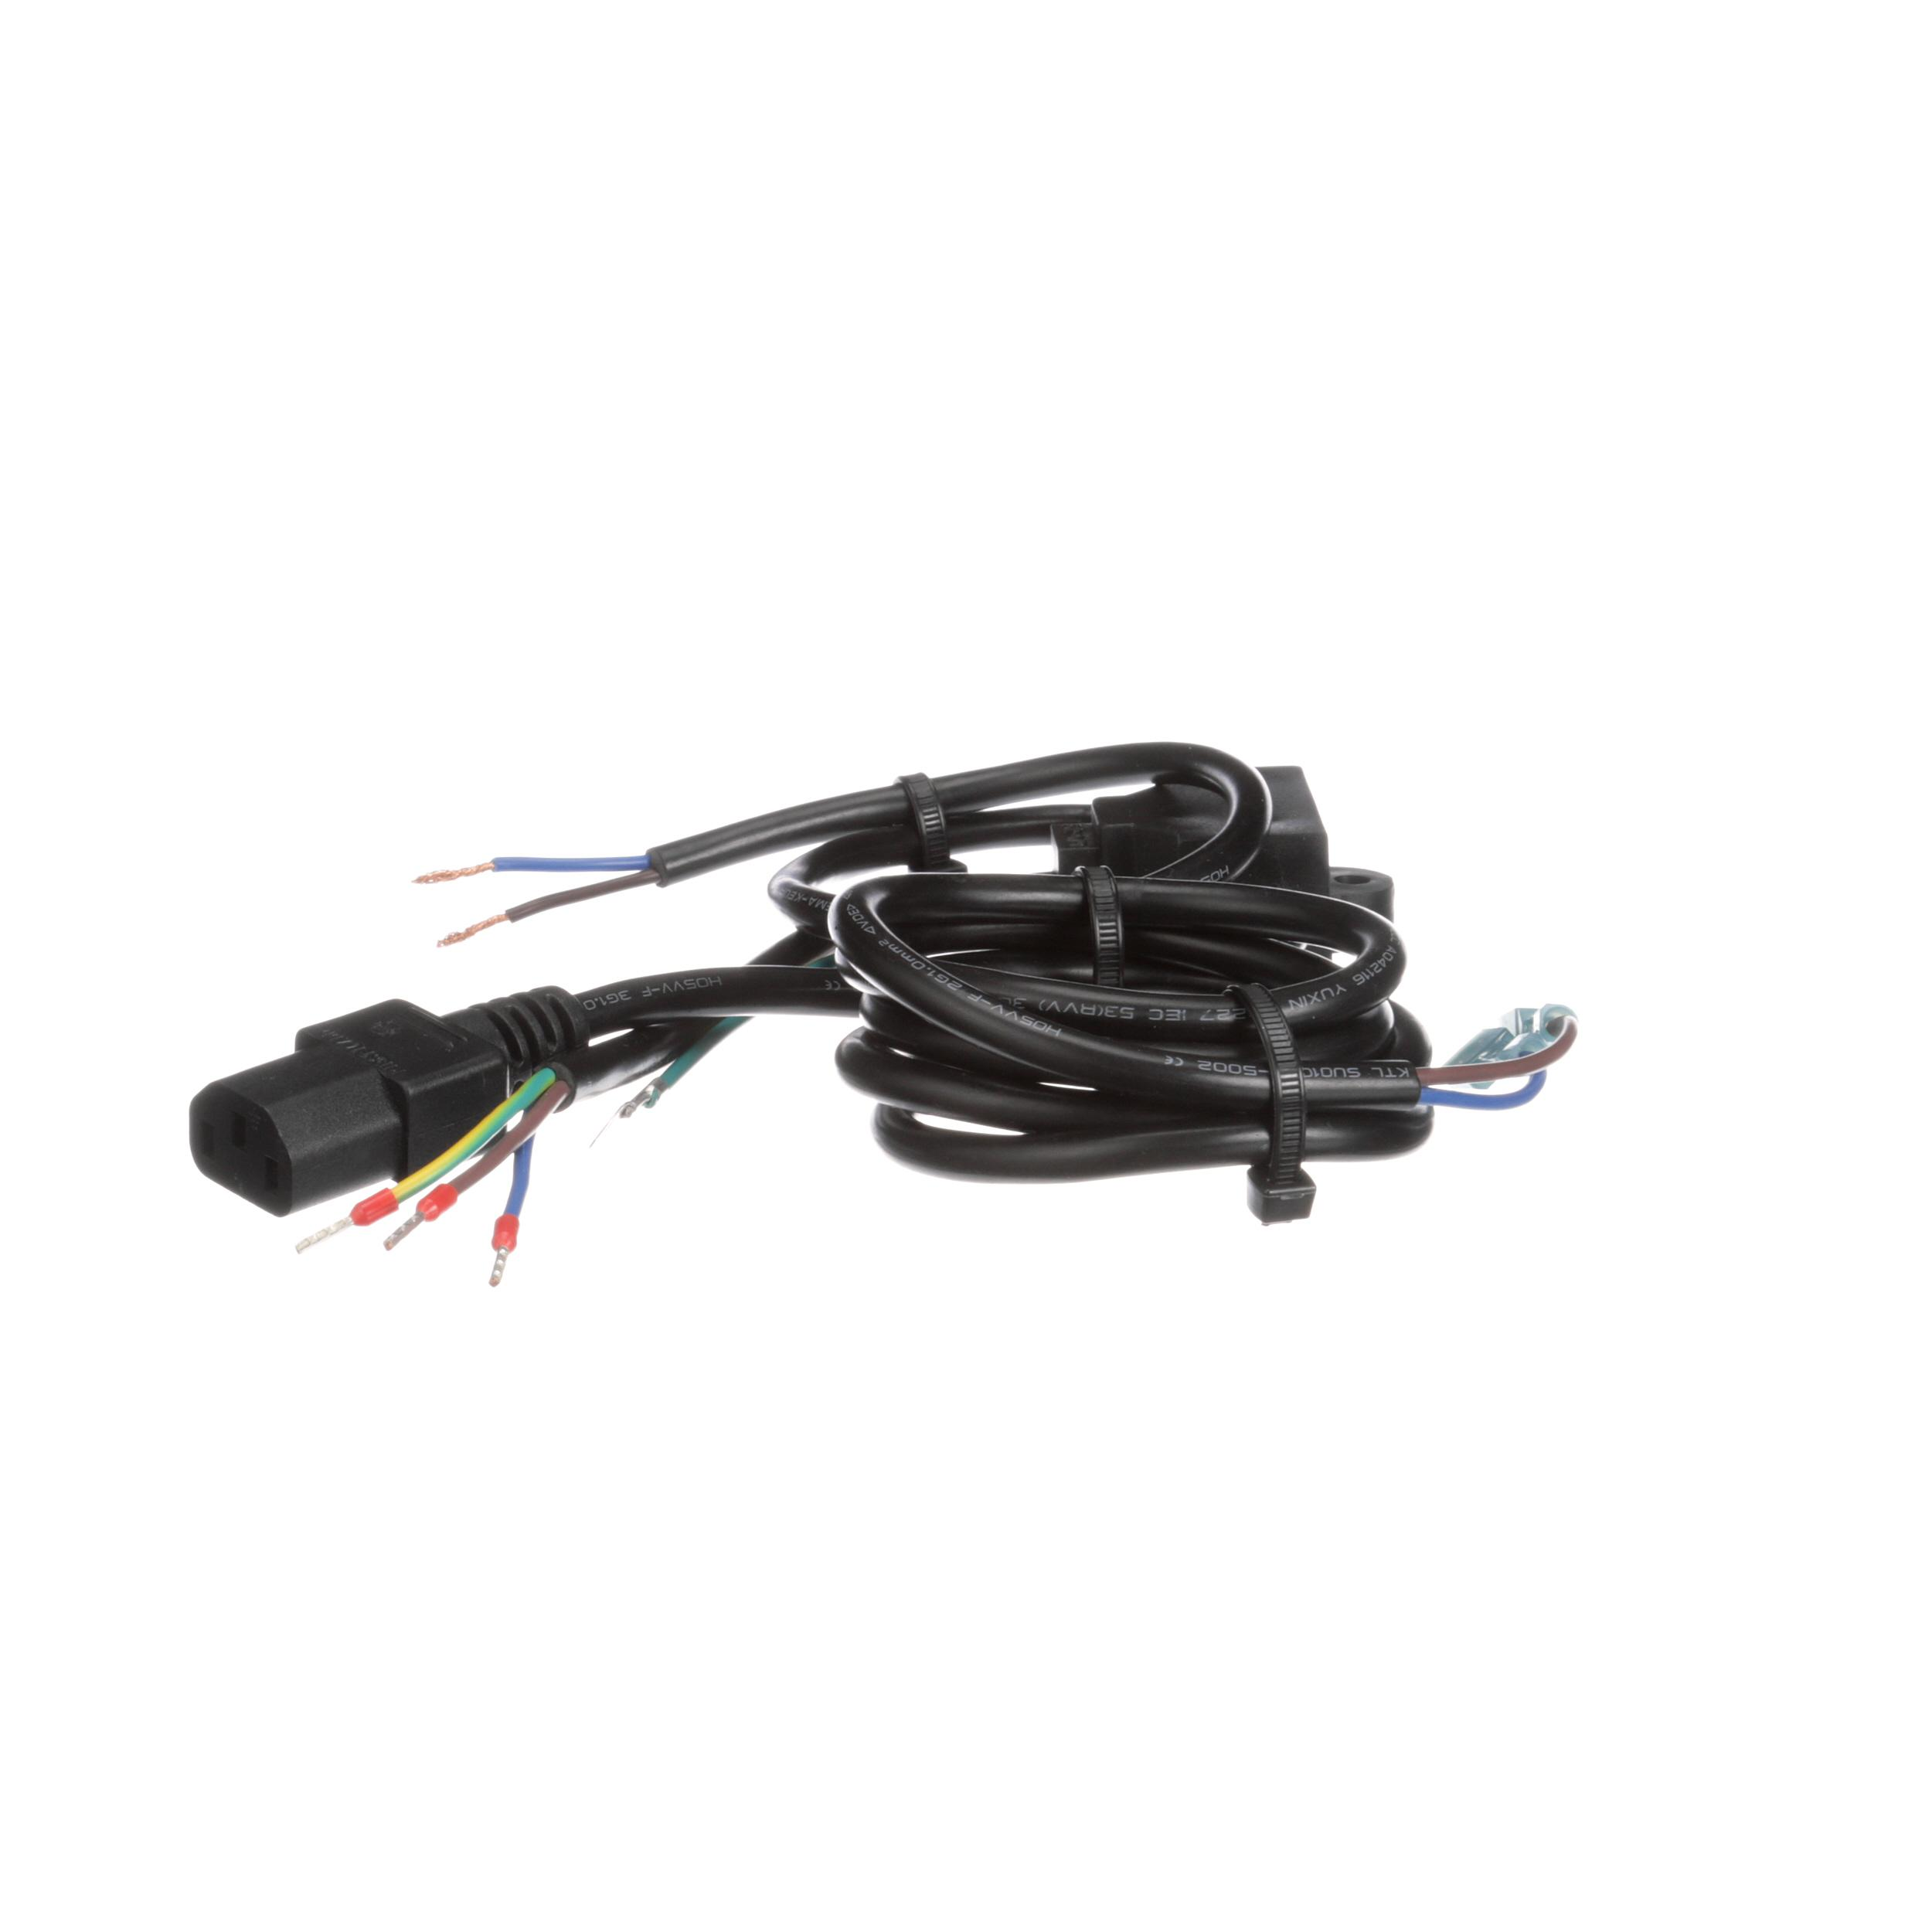 Power Cord Harness : True power cord for vde ce with over tinned ends